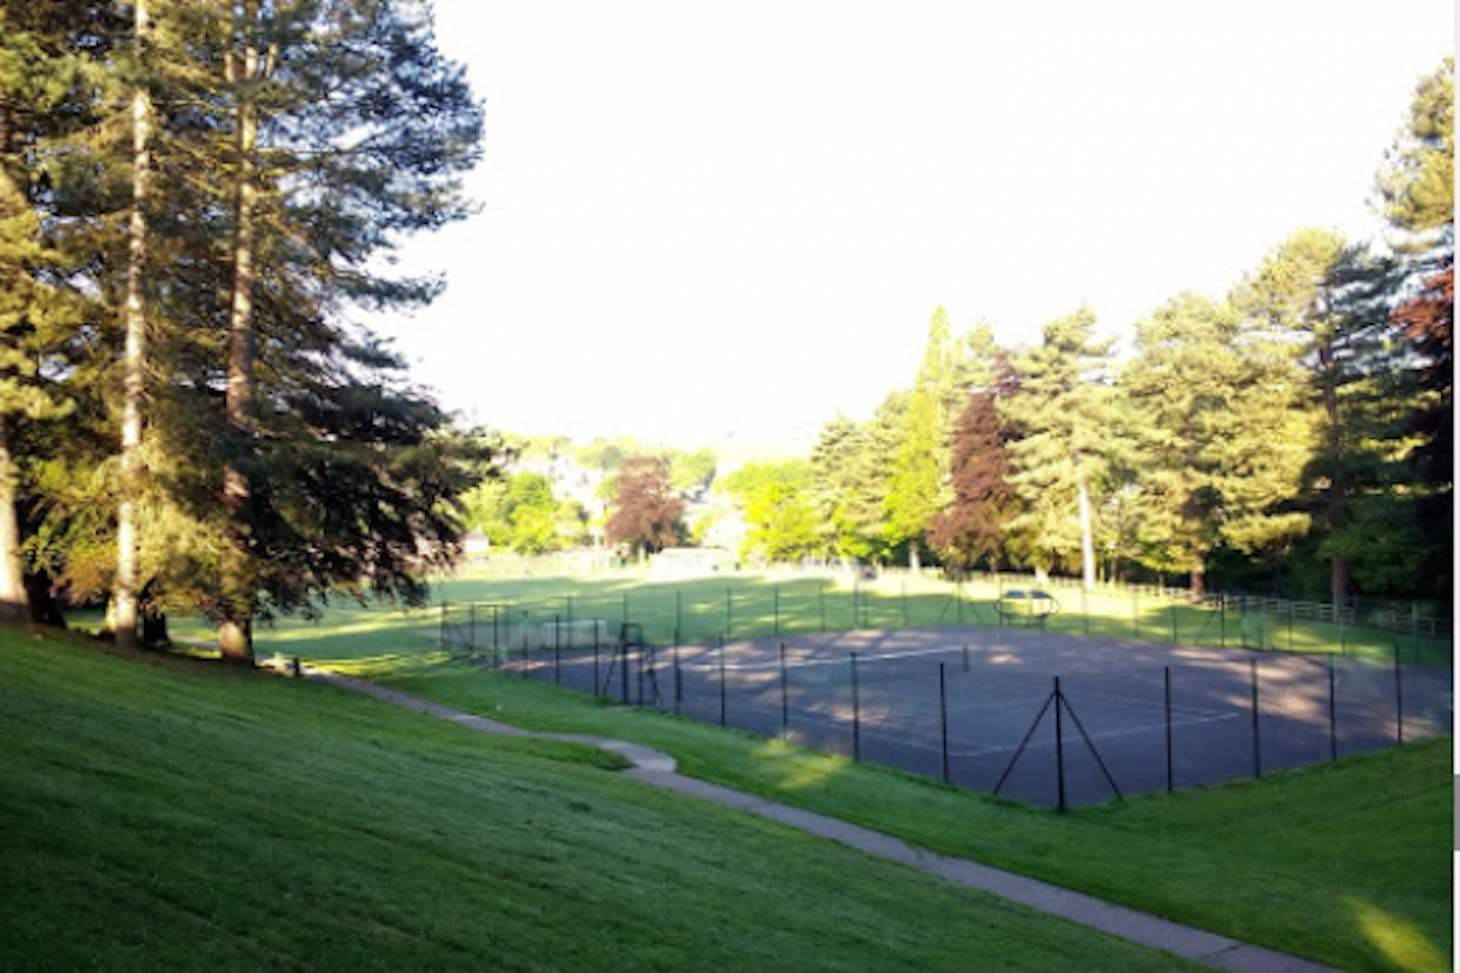 Coronation Park Outdoor | Hard (macadam) tennis court